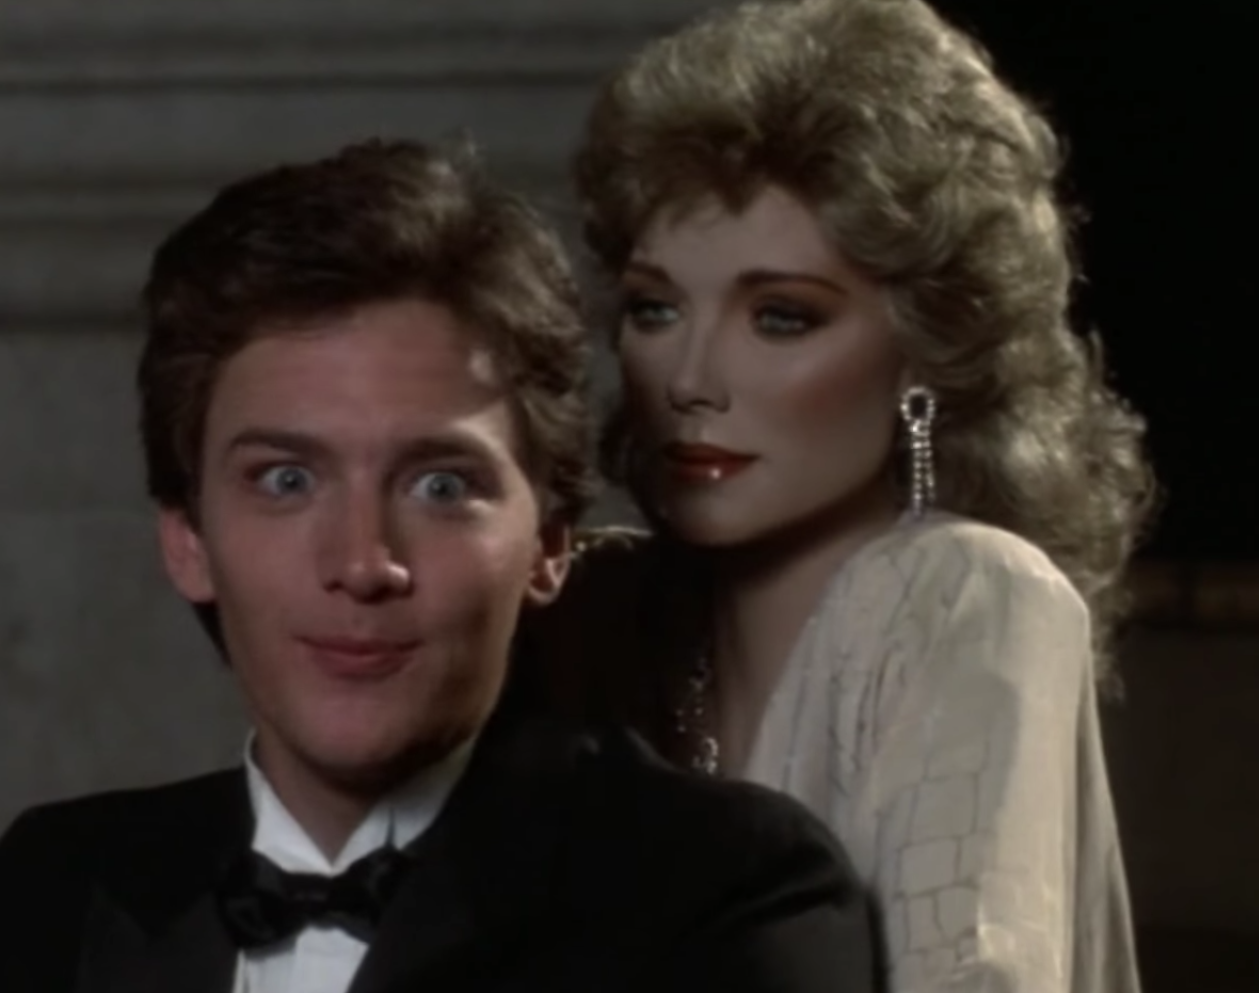 Mannequin e1627048239228 30 Films From The 80s That Are So Bad They're Actually Good